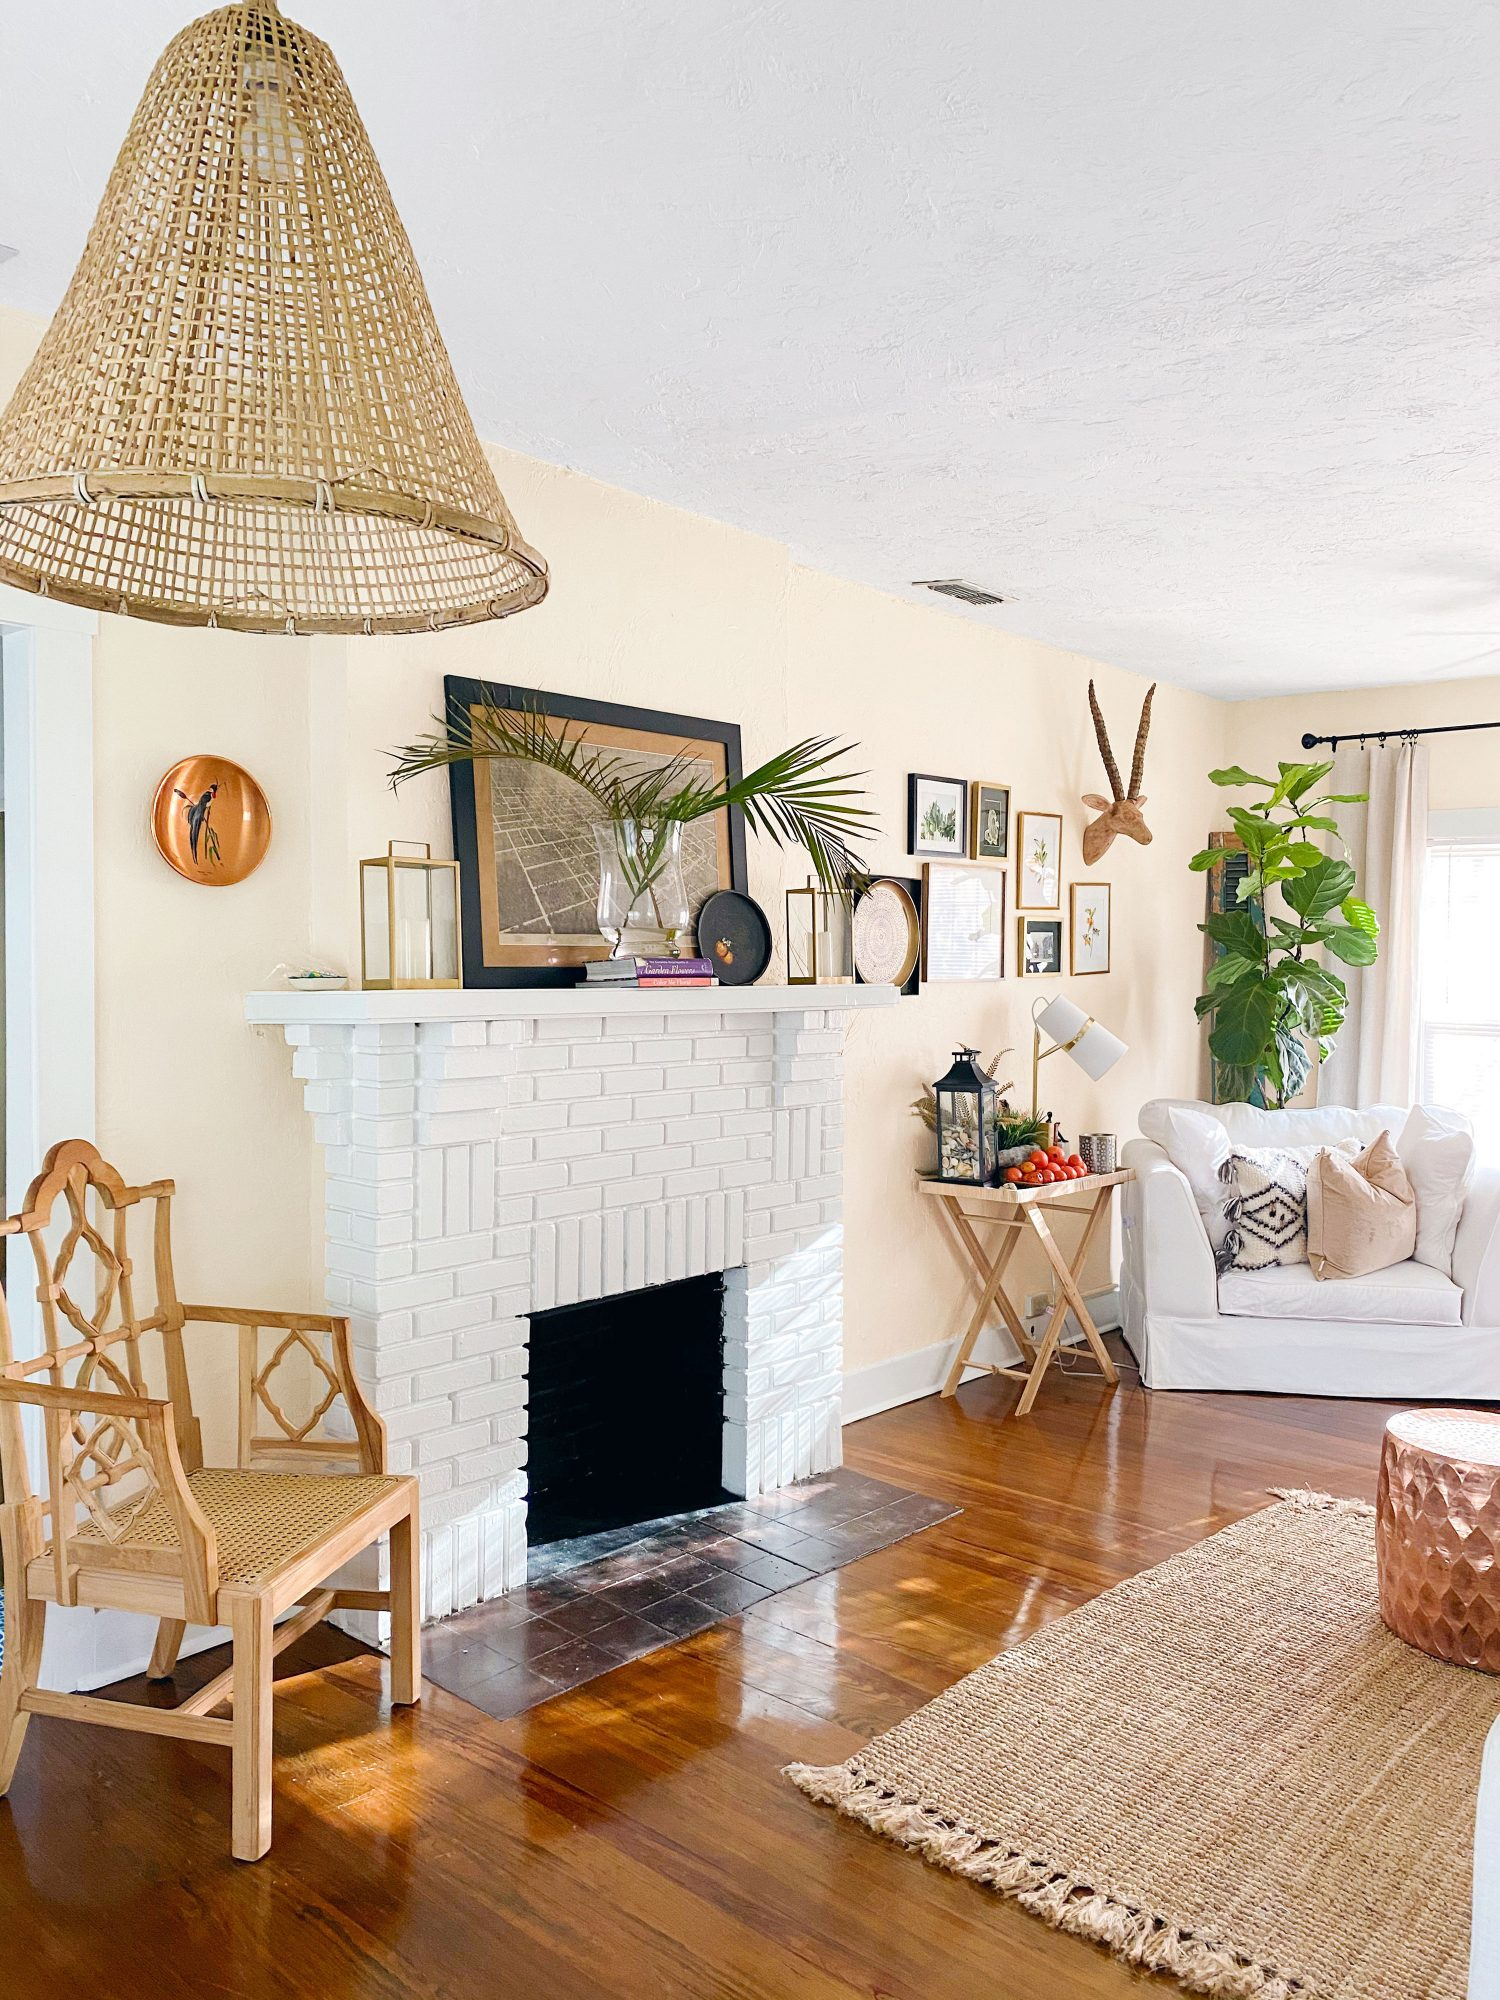 Ebonee Mashae's living room with painted white brick fireplace and textured accessories